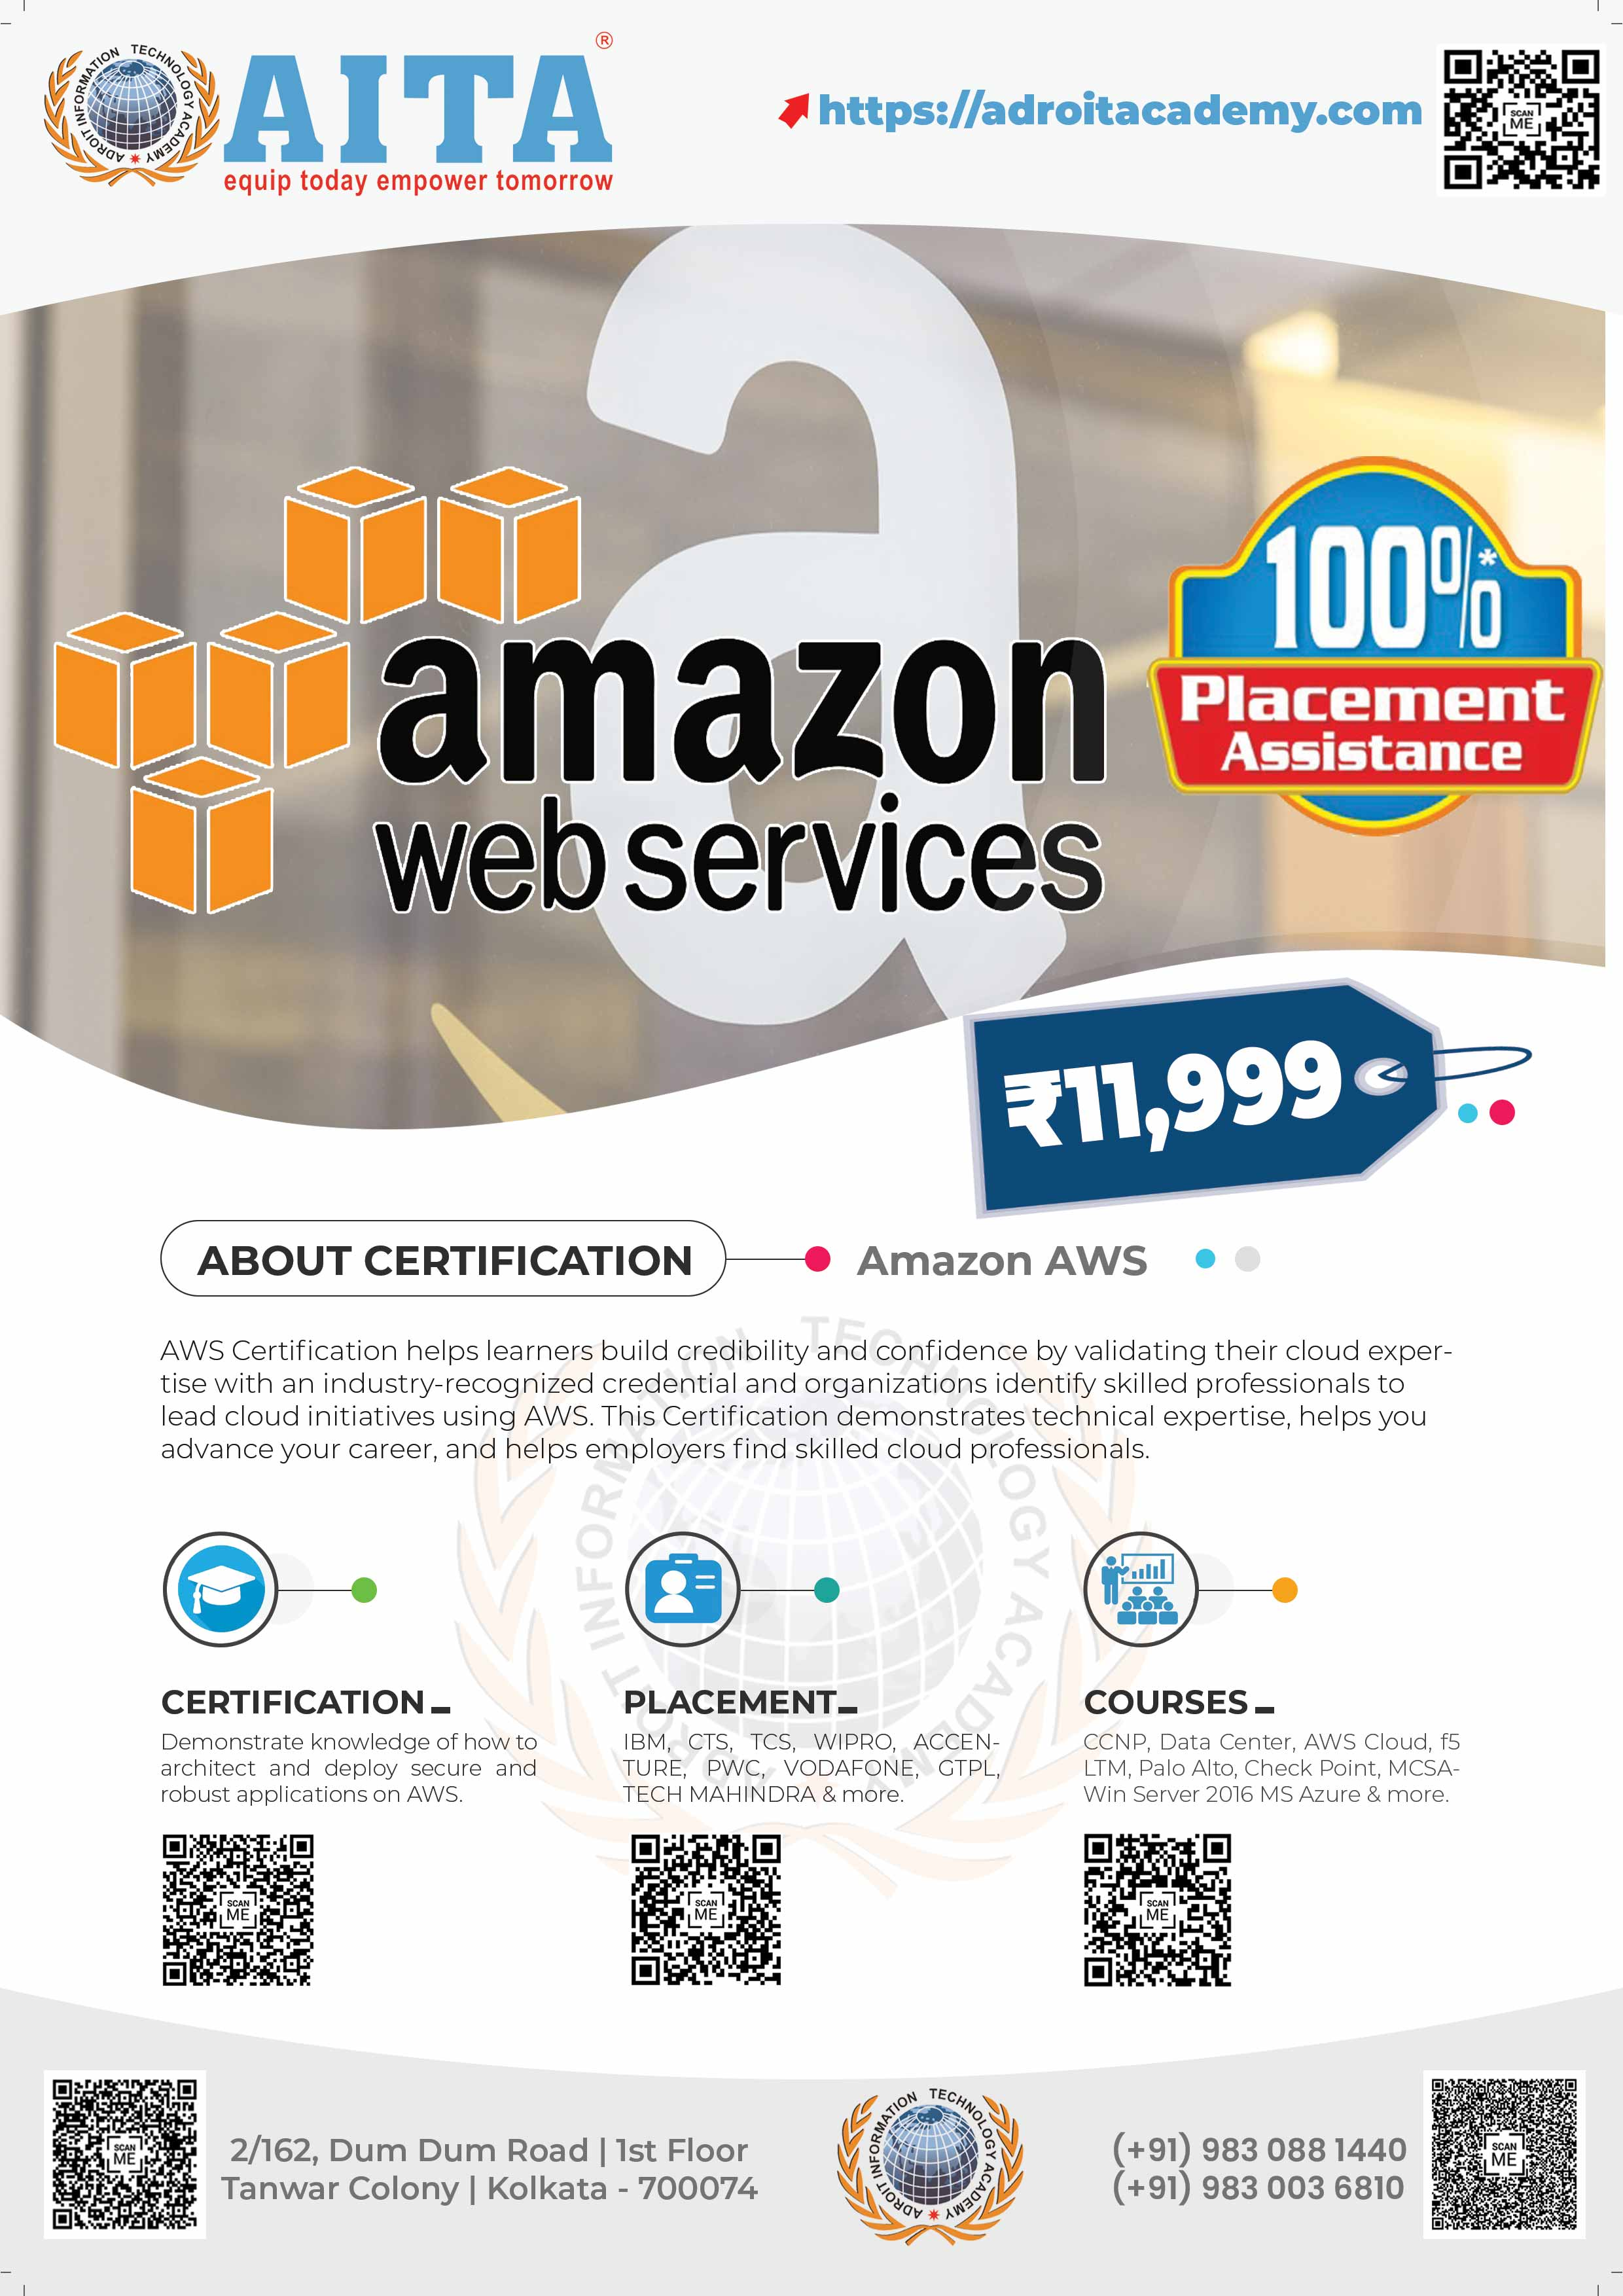 AMAZON-AWS-AITA